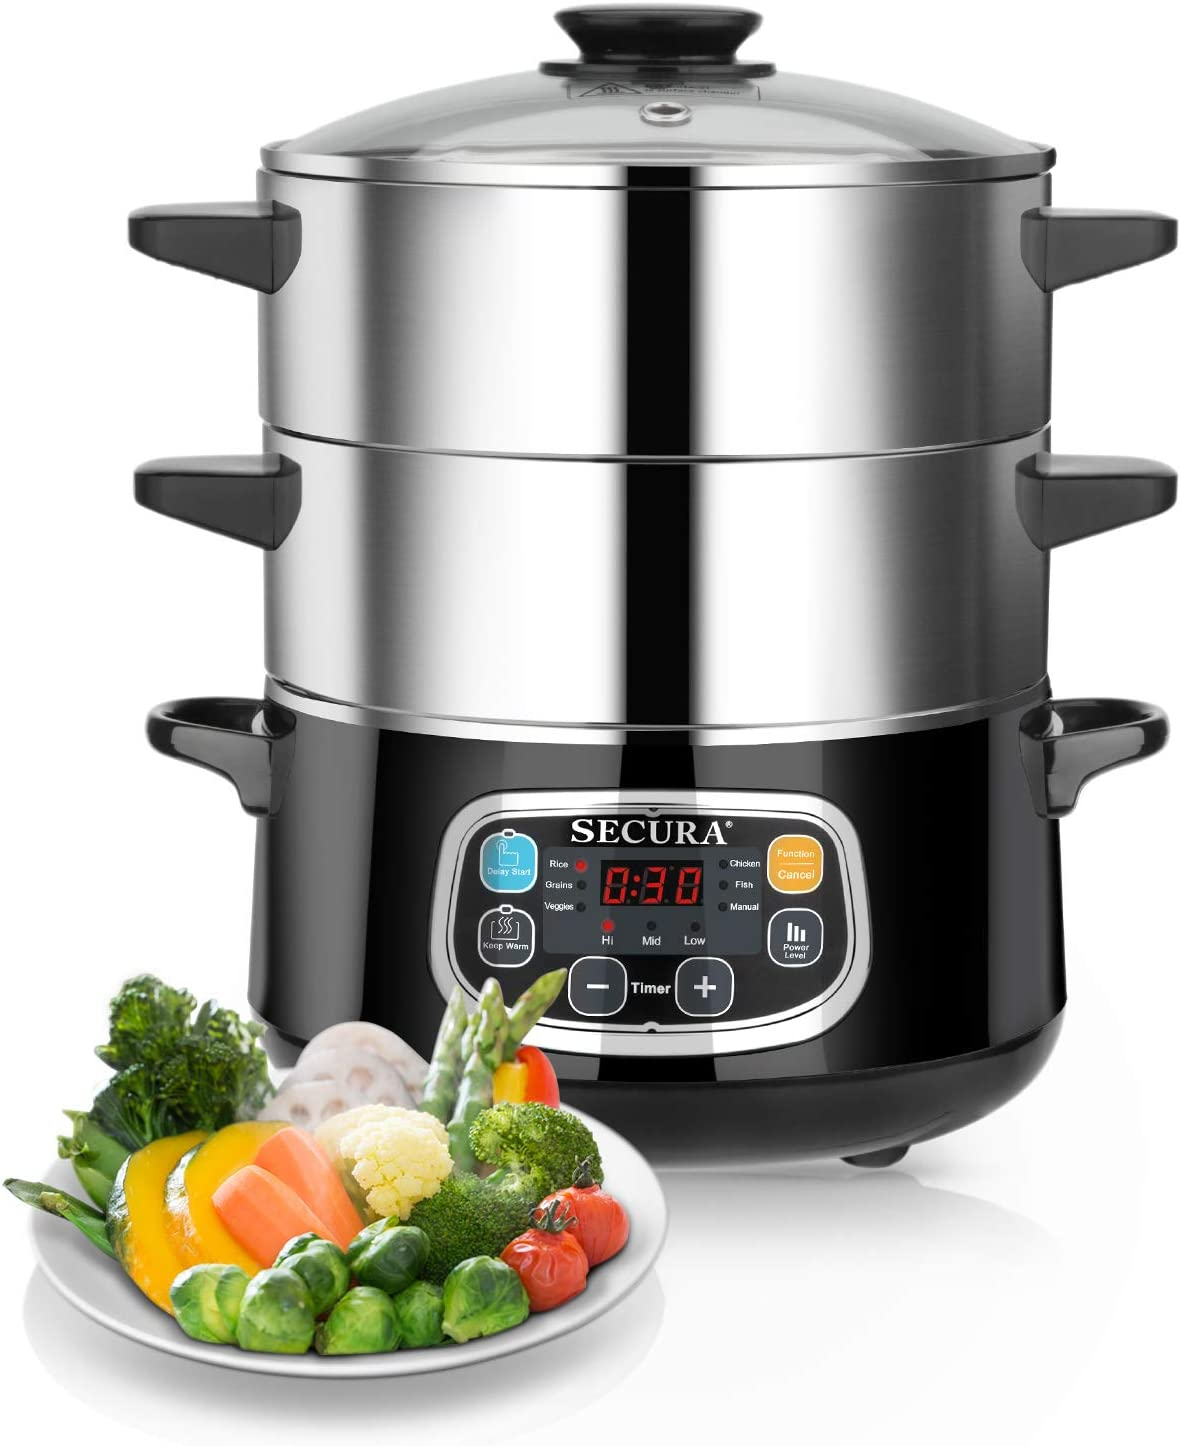 Secura Electric Food Steamer, Vegetable Steamer Double Tiered Stackable Baskets with Timer